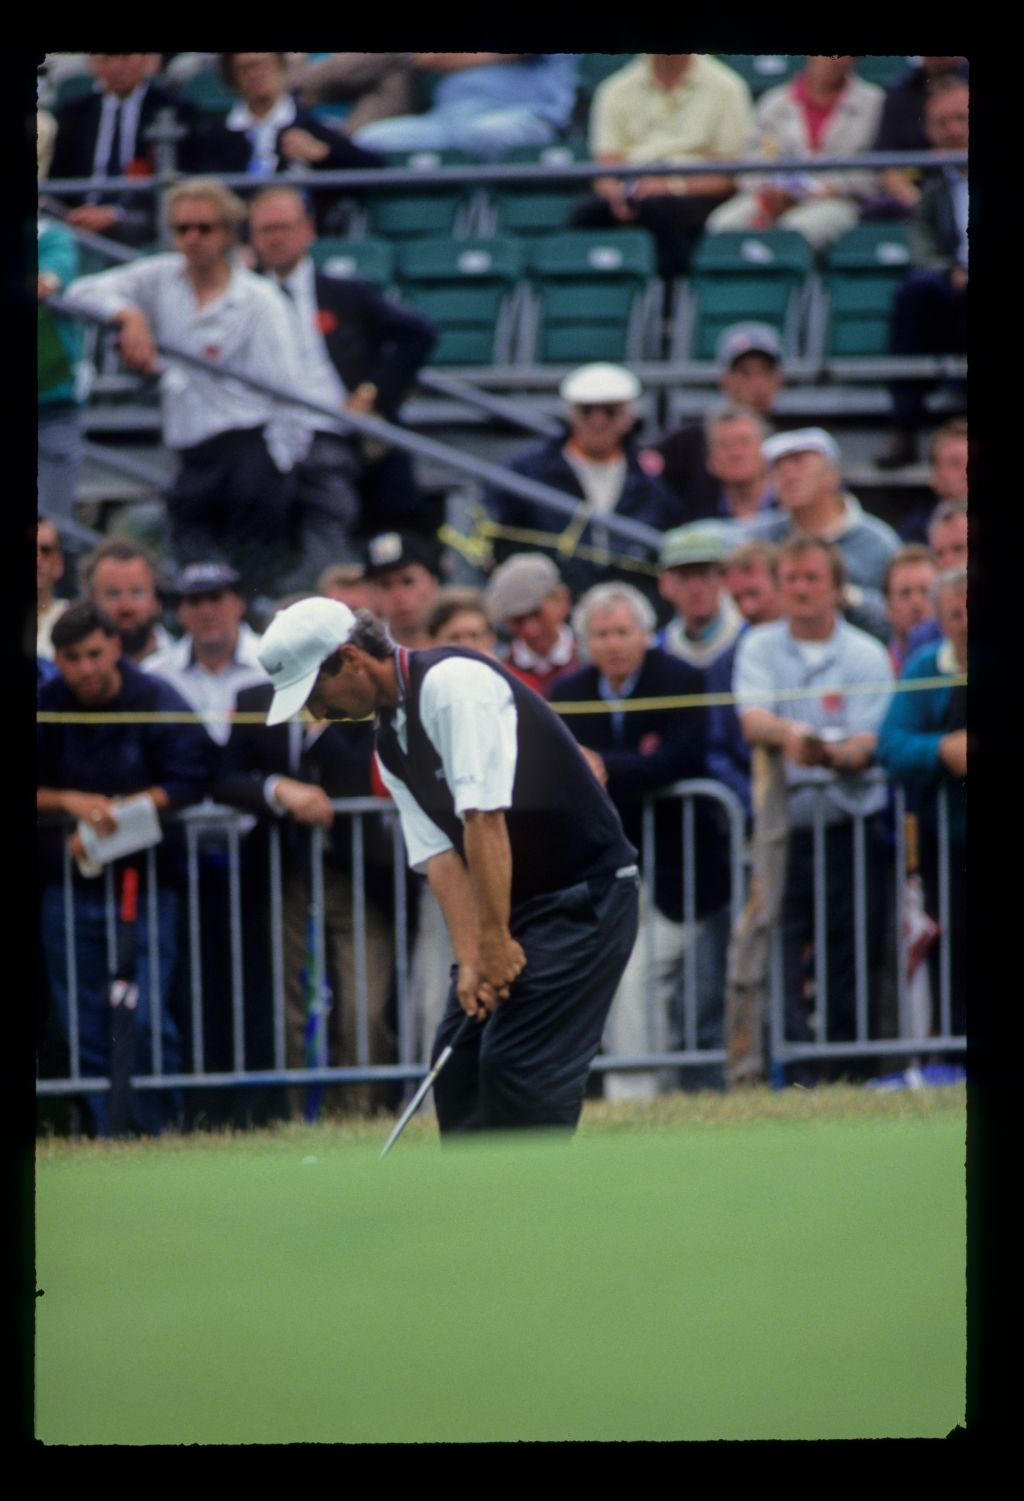 Corey Pavin chipping to the green on his way to fourth place during the 1993 Open Championship